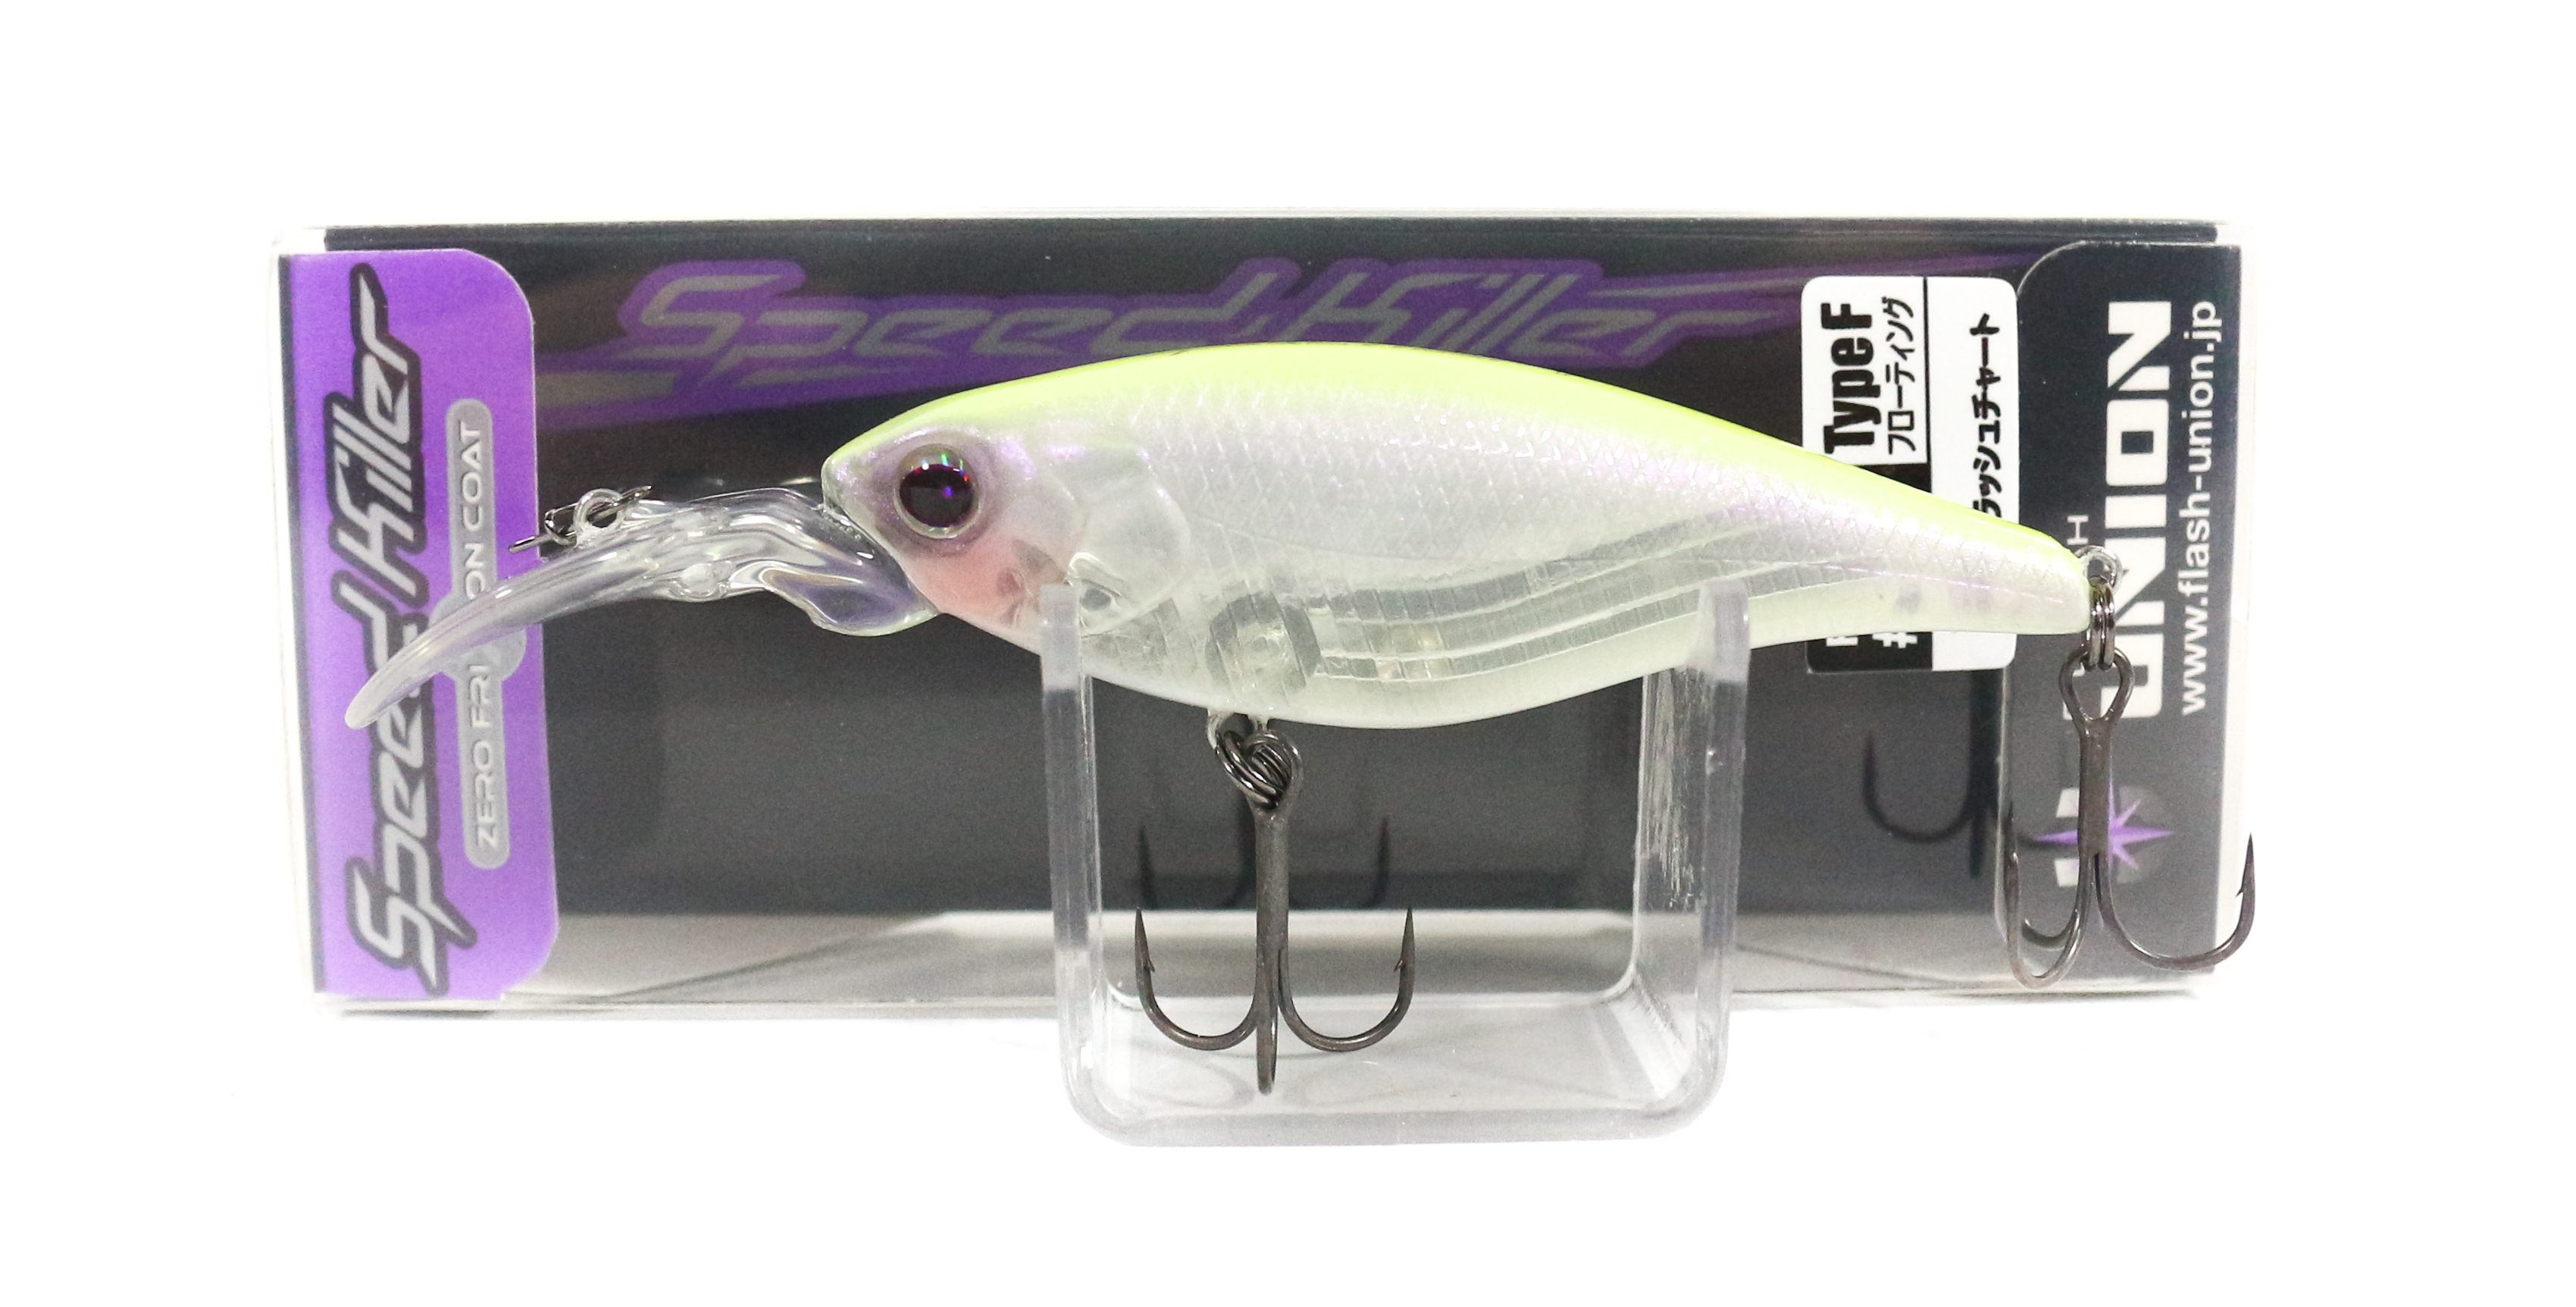 Sale Flash Union Speed Killer 60 mm Suspend Lure (5053)